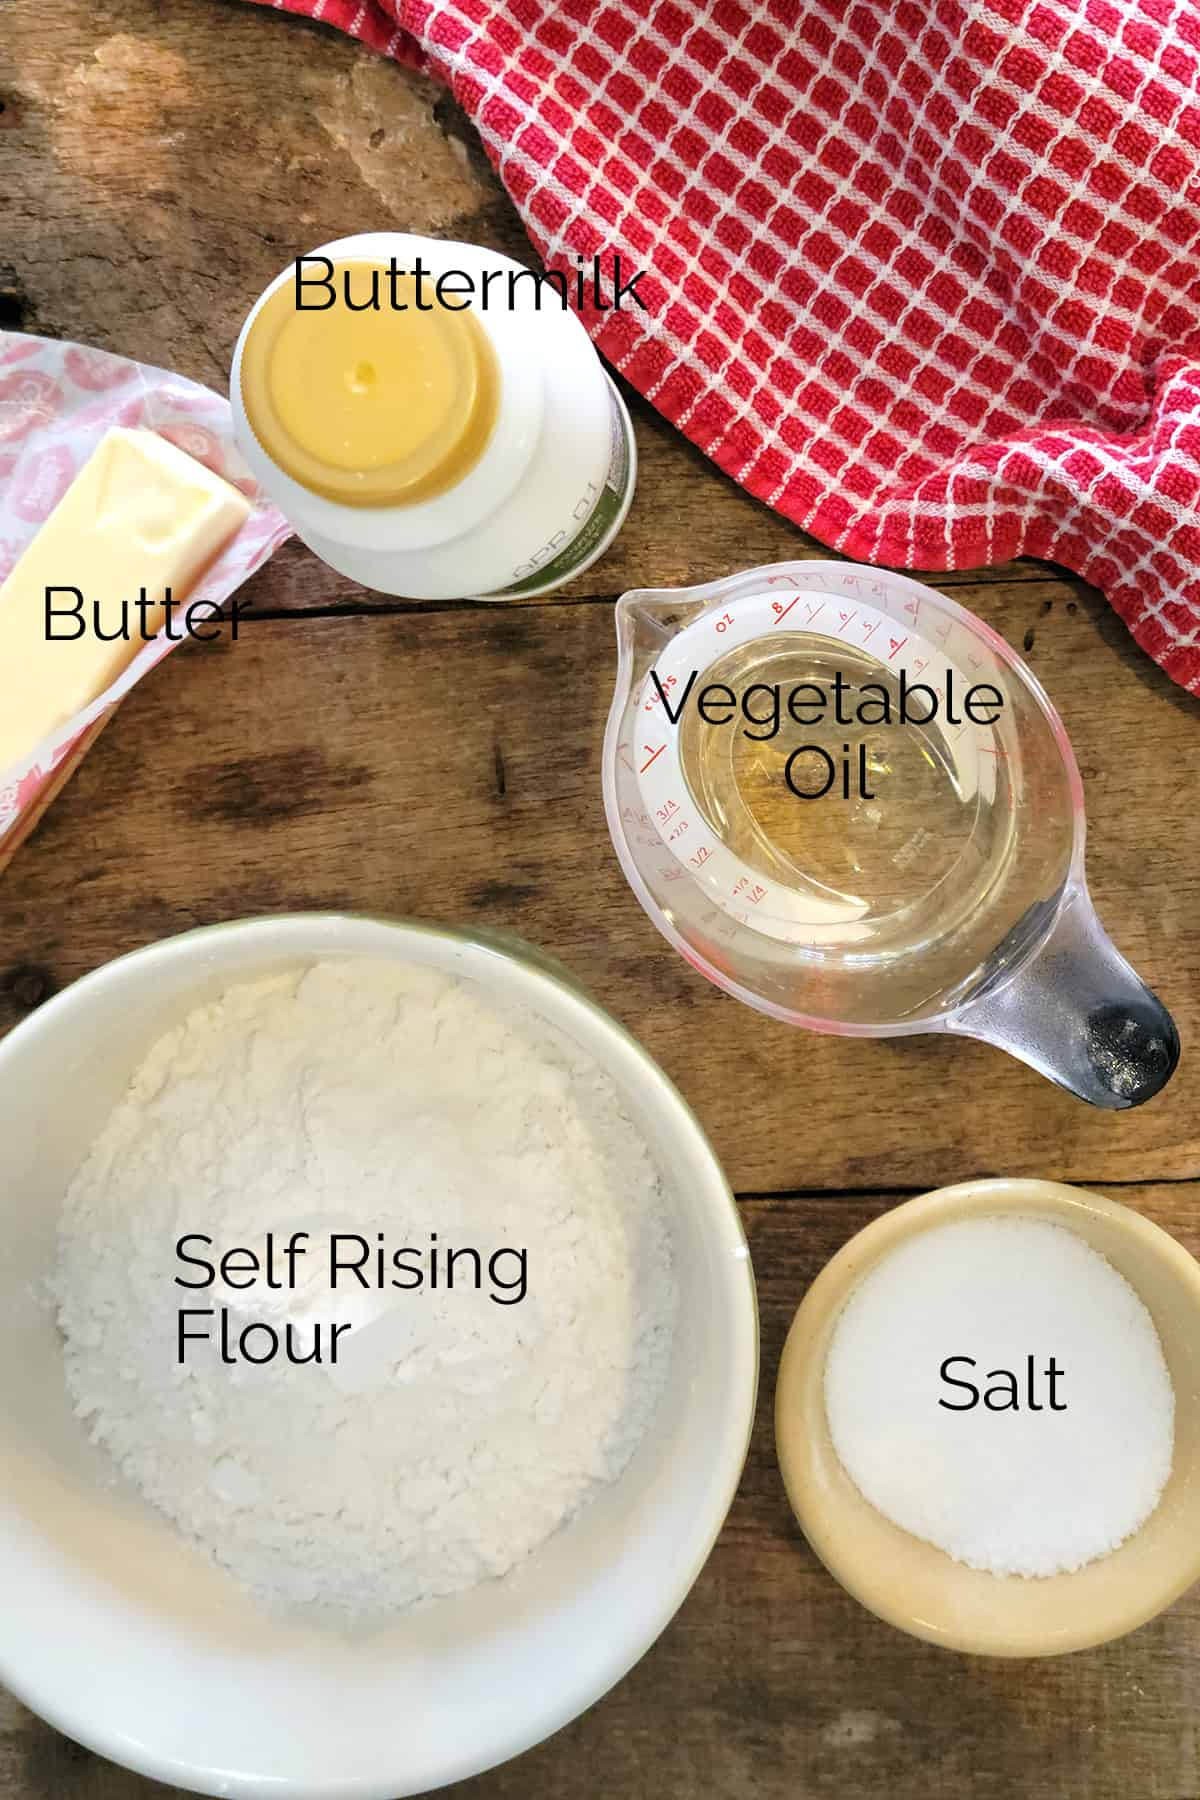 Ingredients needed for the recipe: butter, buttermilk, vegetable oil, salt, and self-rising flour.